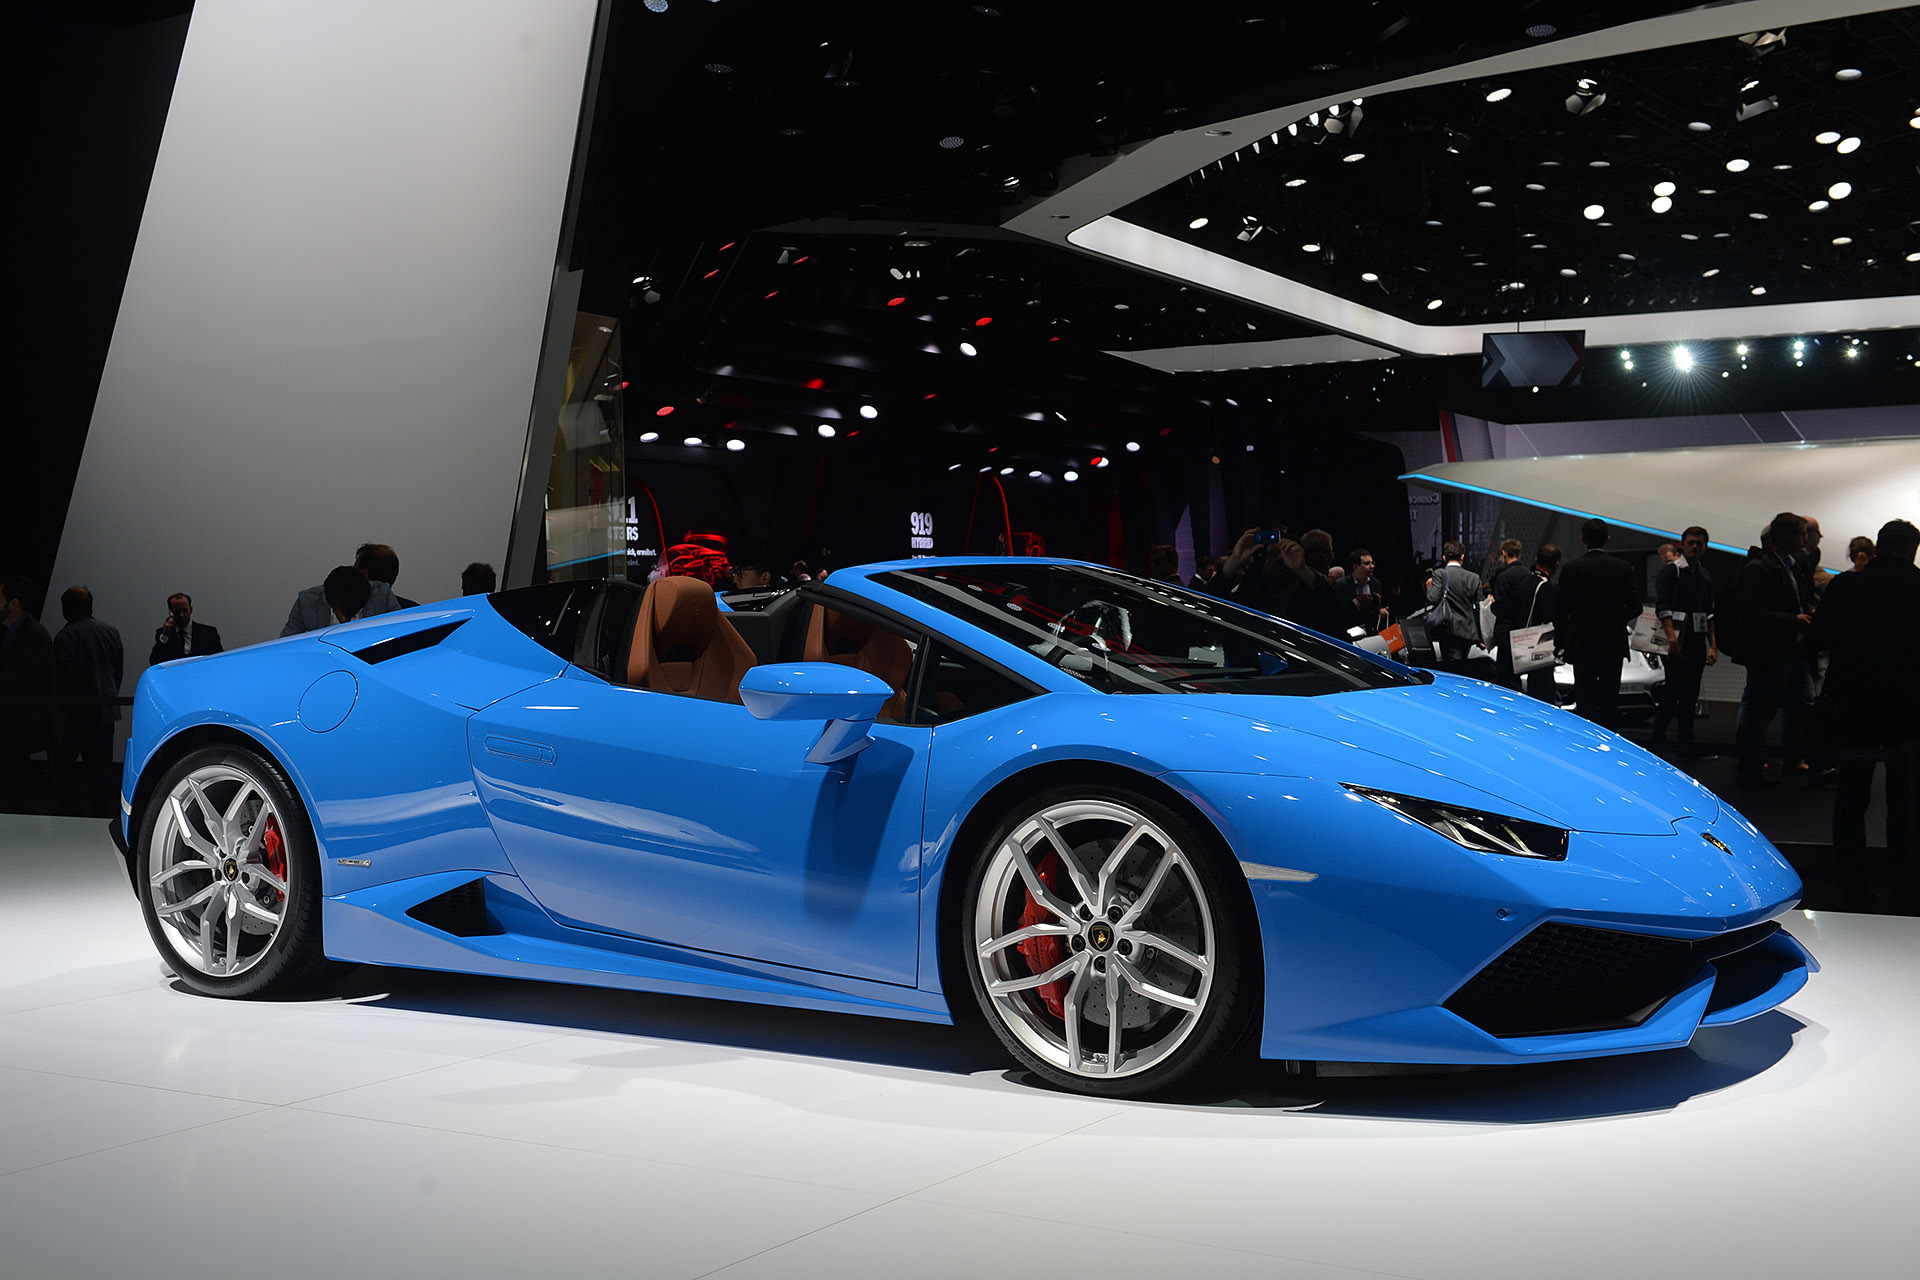 lamborghini huracan lp 610 4 spyder frankfurt 2015 autoblog. Black Bedroom Furniture Sets. Home Design Ideas